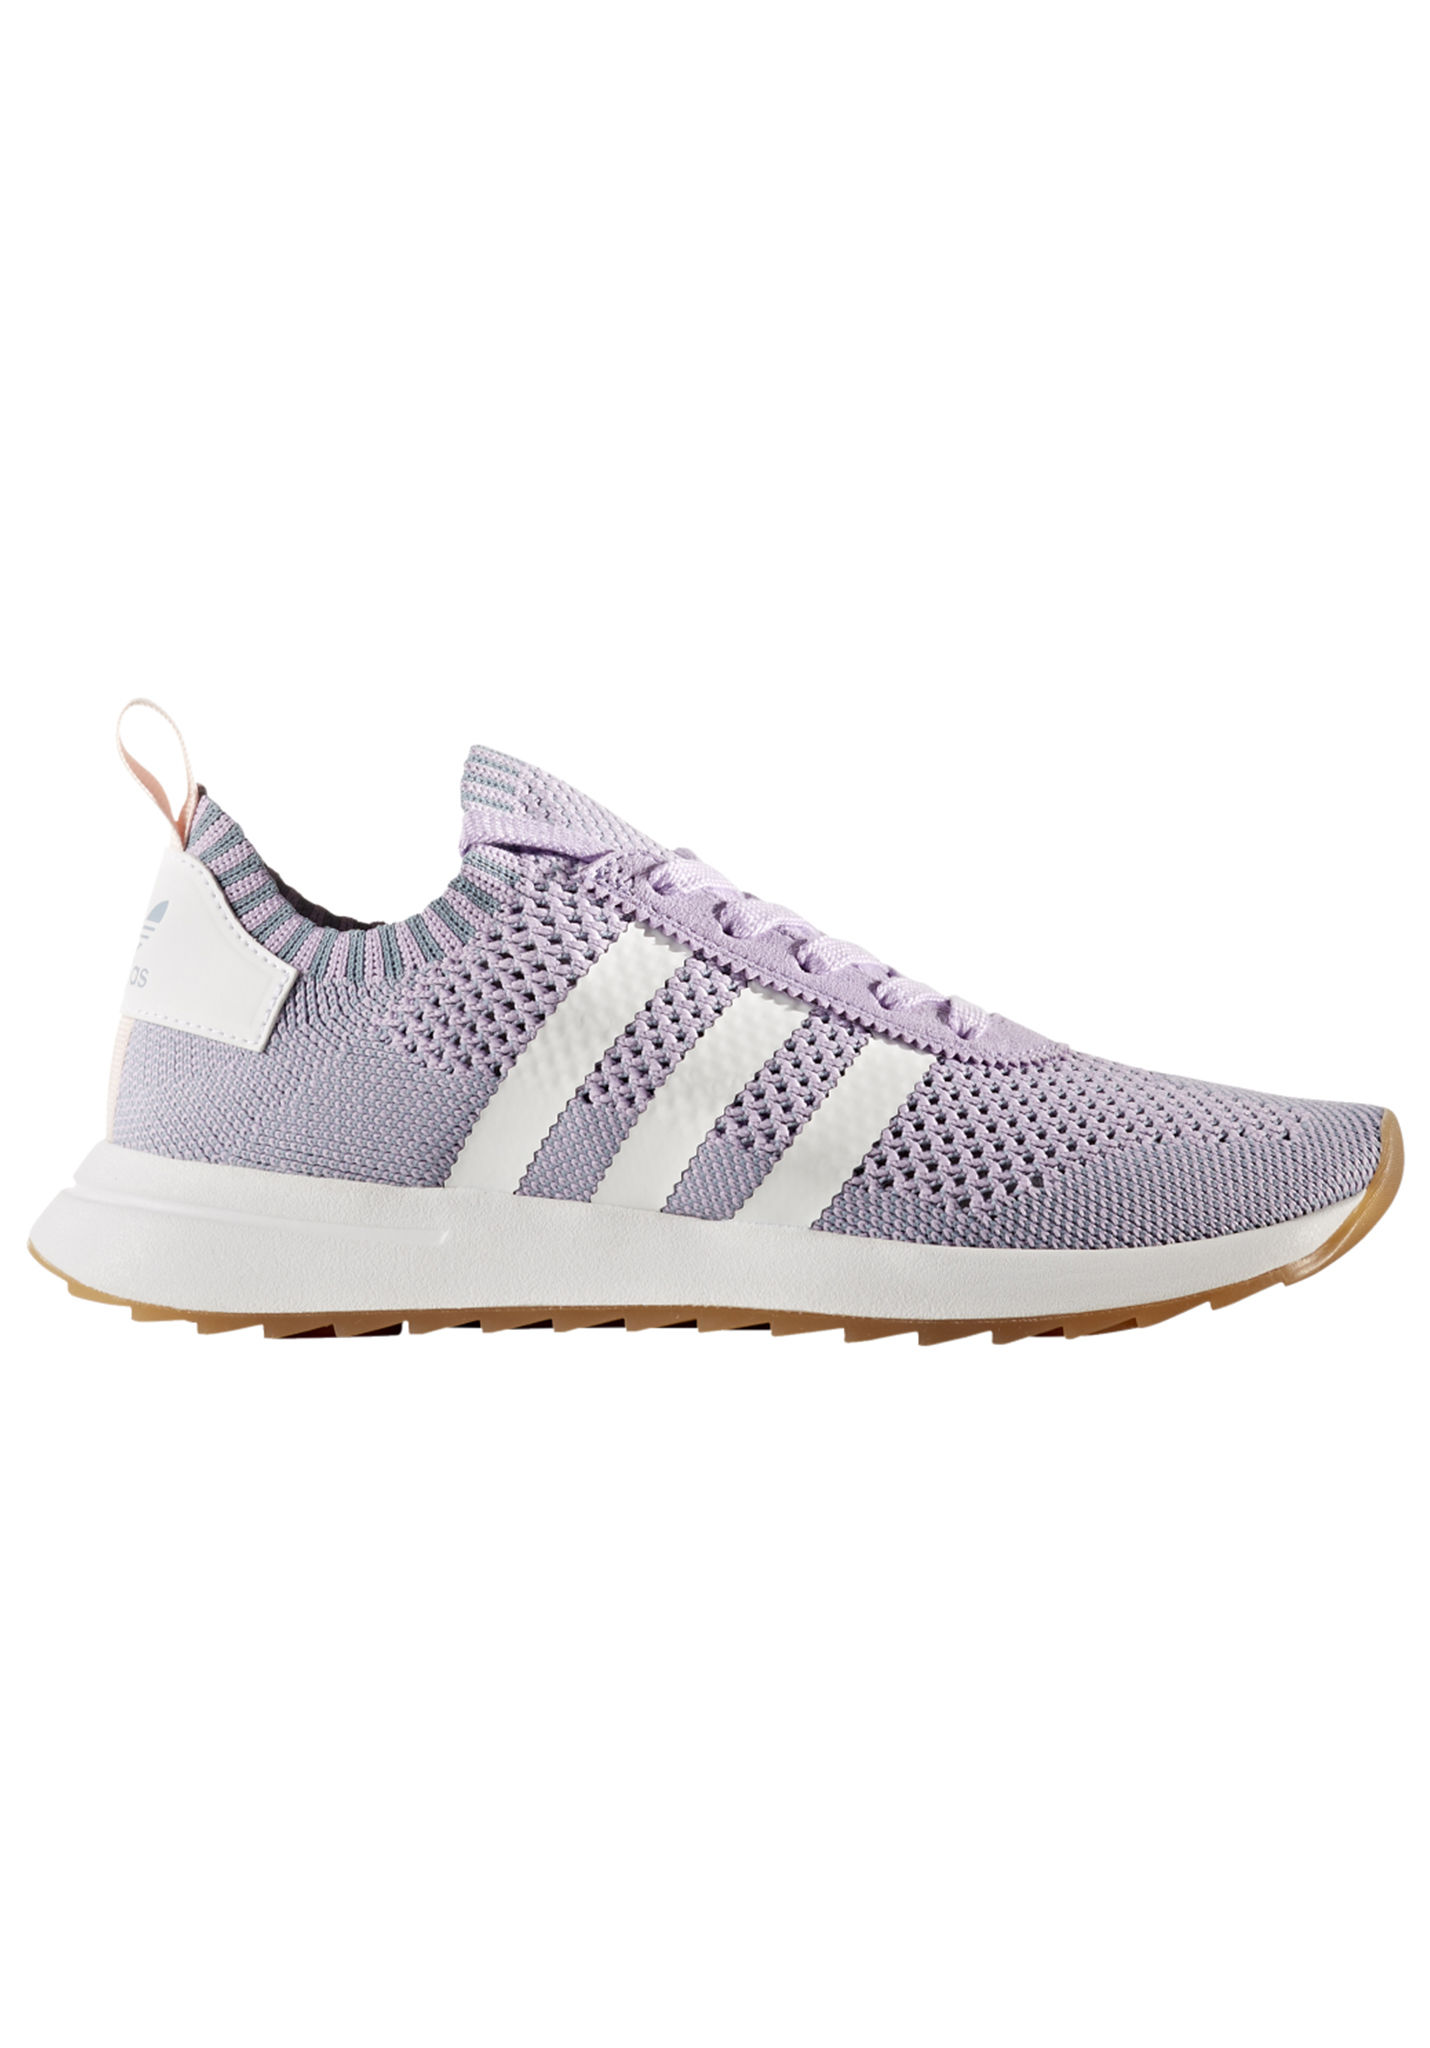 outlet store dd062 e861c ADIDAS ORIGINALS Flashback Primeknit - Sneaker per Donna - Porpora - Planet  Sports